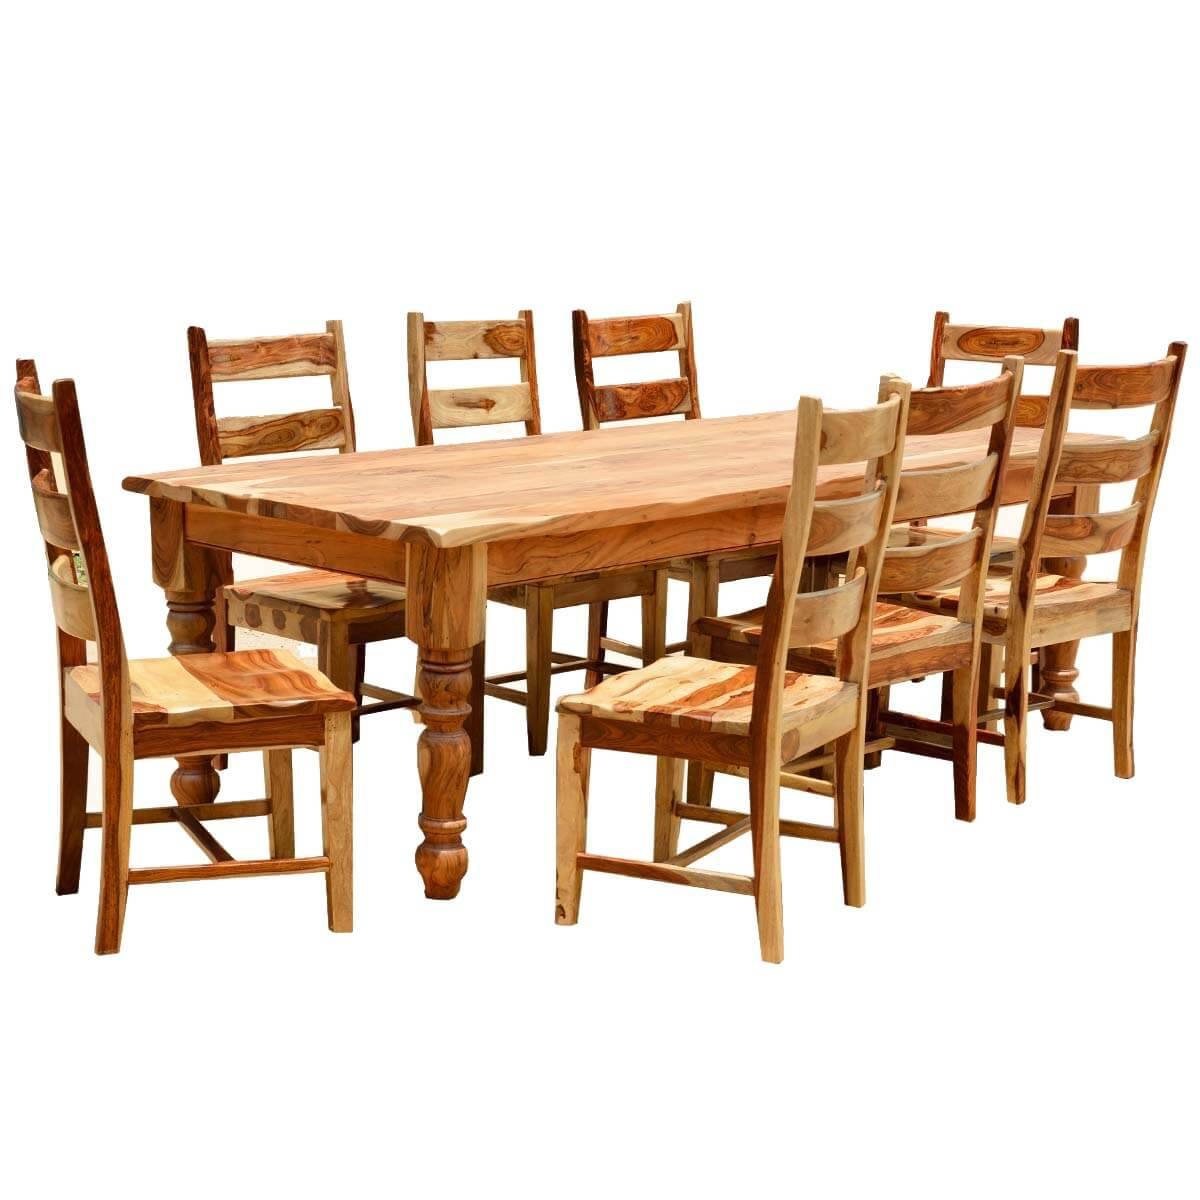 Rustic Wood Dining Sets